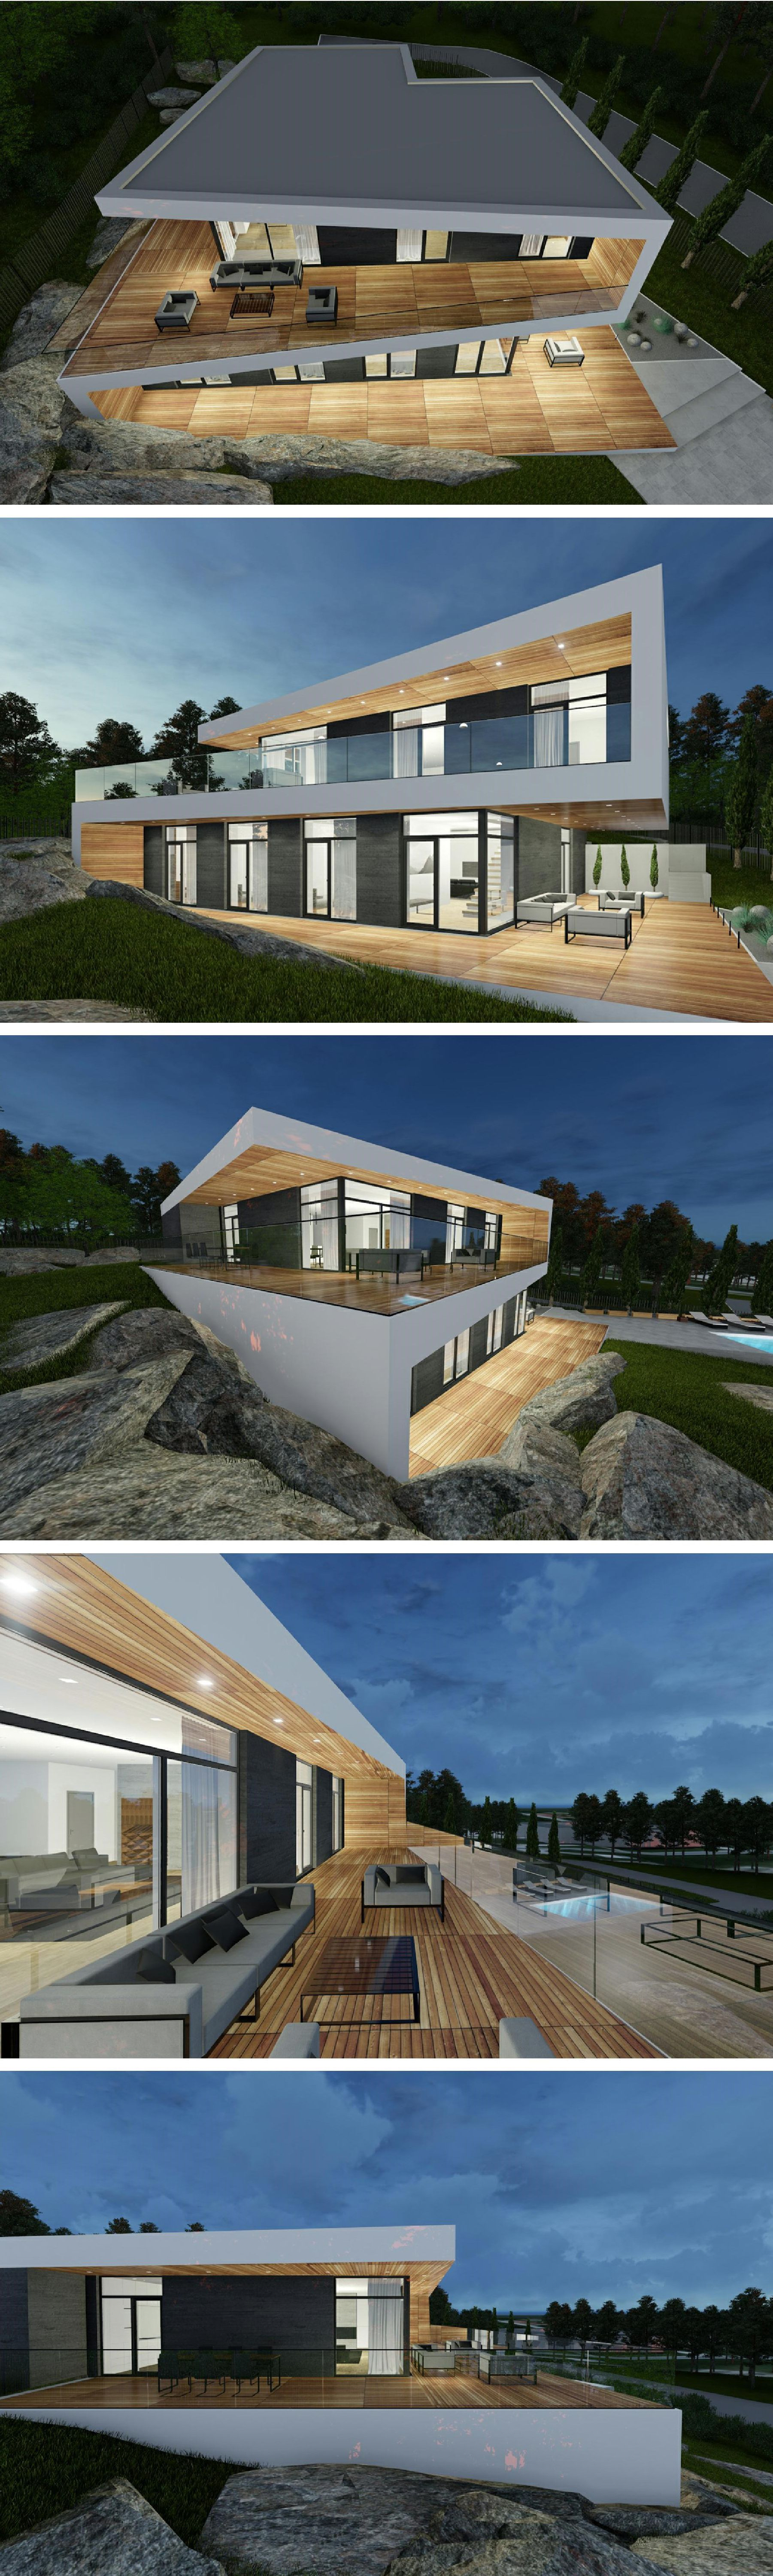 modern villa in Stockholm by Ng architects www.ngarchitects.lt